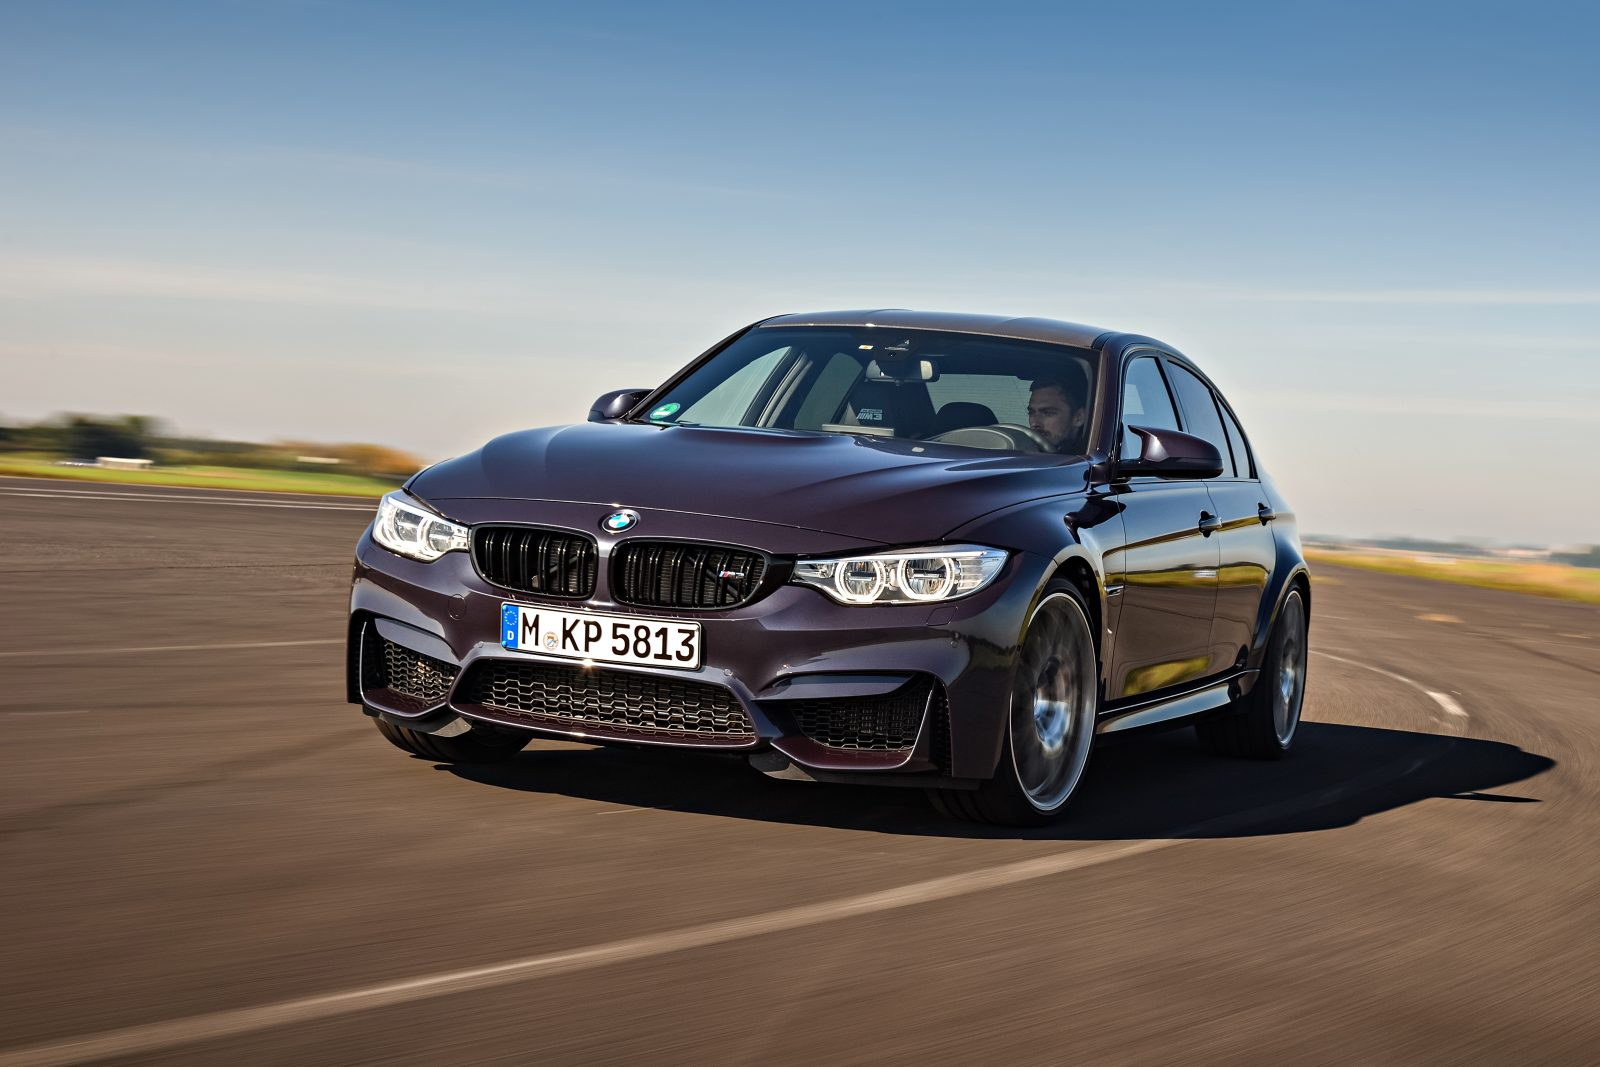 f82-m3-30-year-in-motion